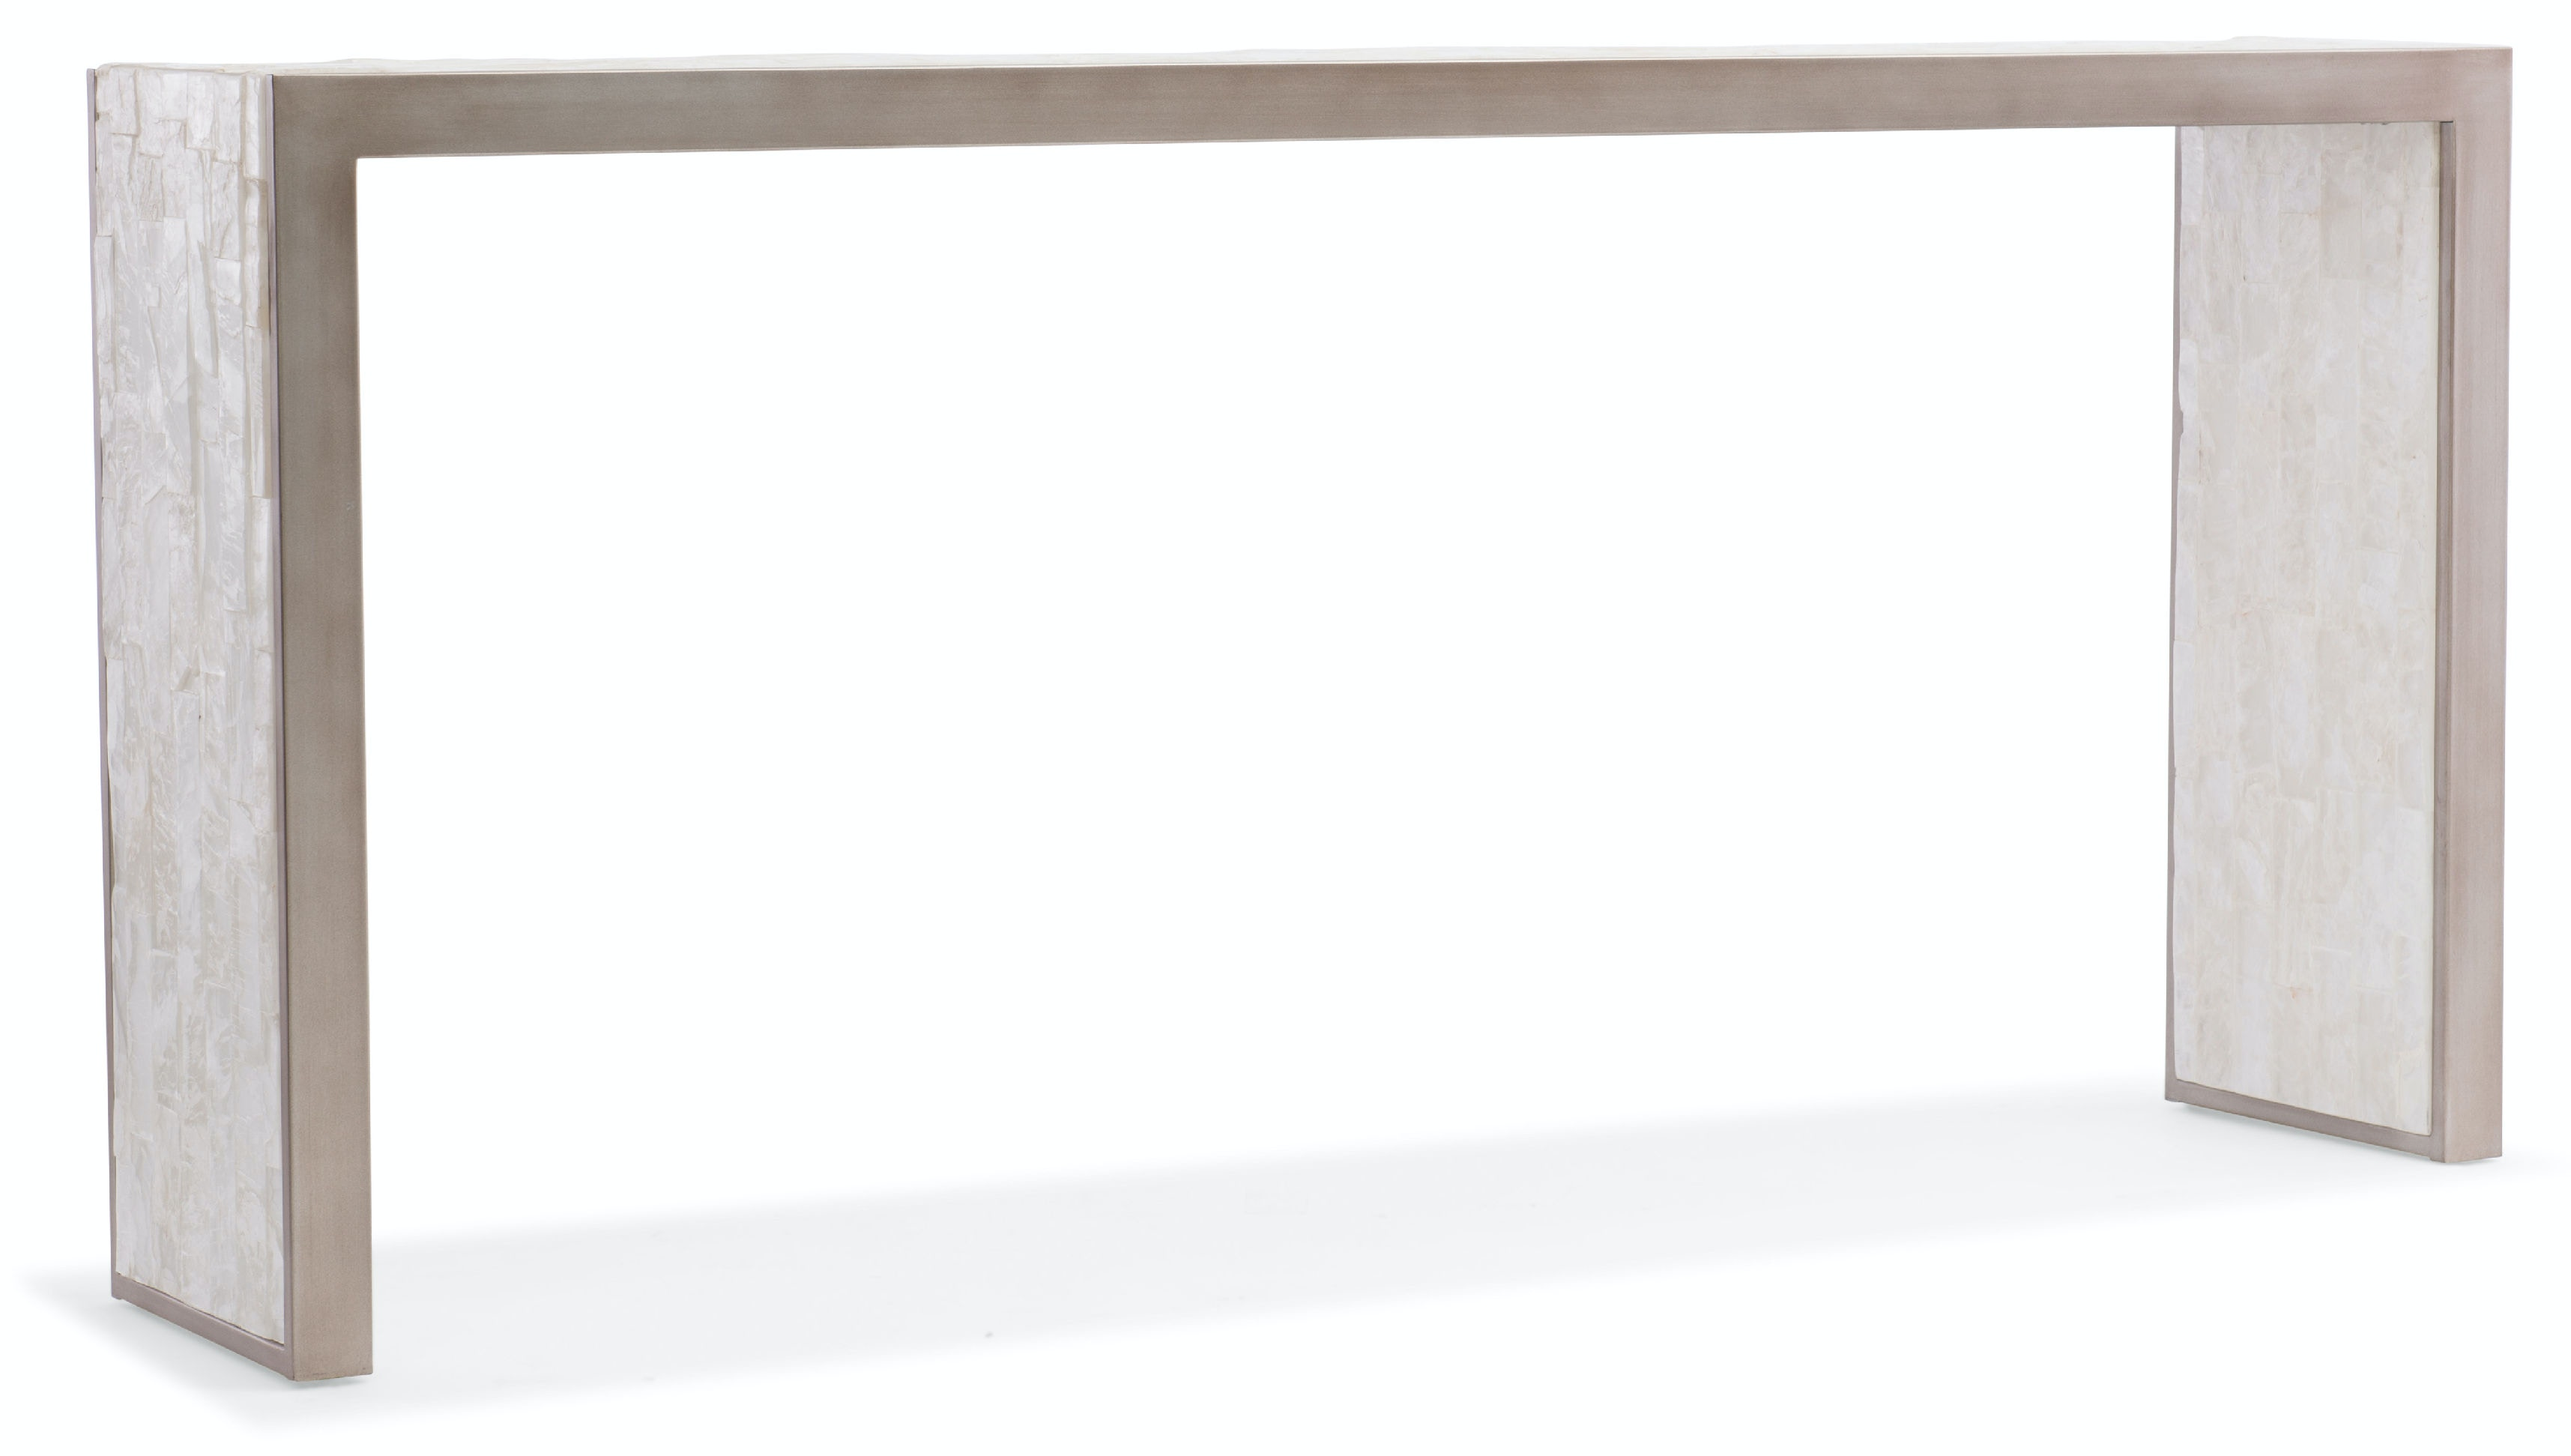 Hooker Furniture Melange Emma Console Table 638-85302-MULTI